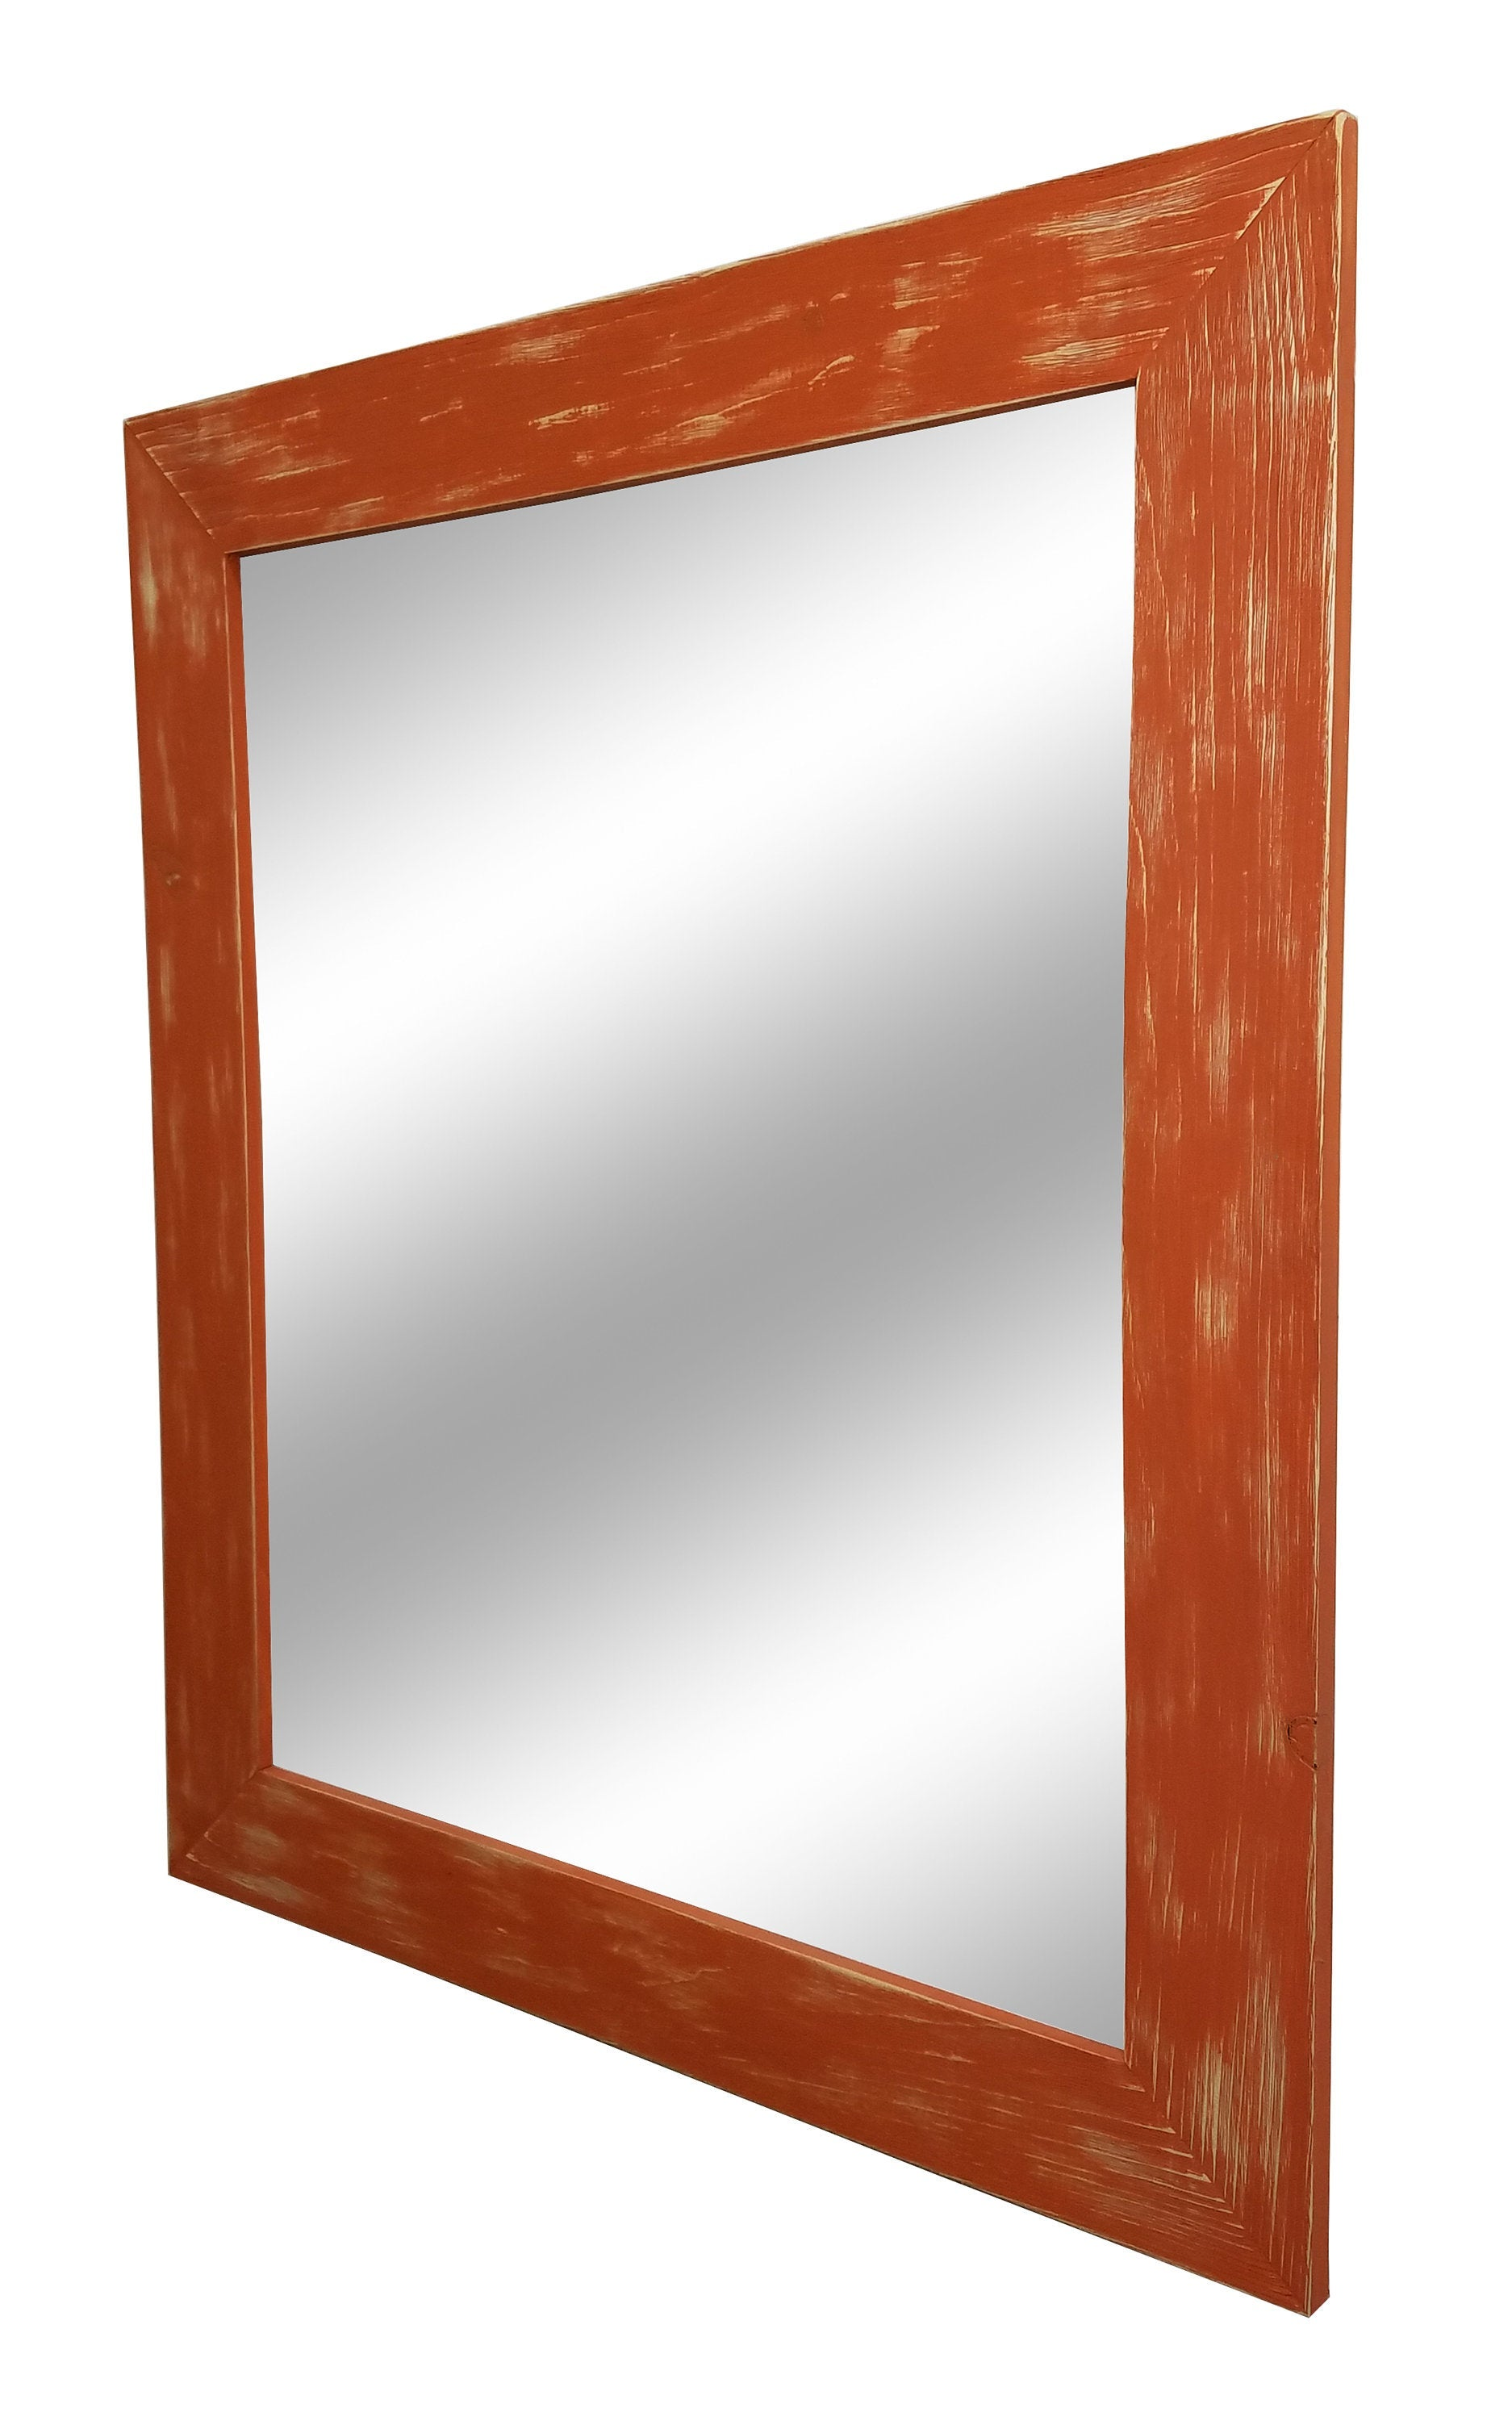 Shiplap Reclaimed Wood Mirror Shown in Burnt Orange, 4 Sizes & 20 Colors - Renewed Decor & Storage